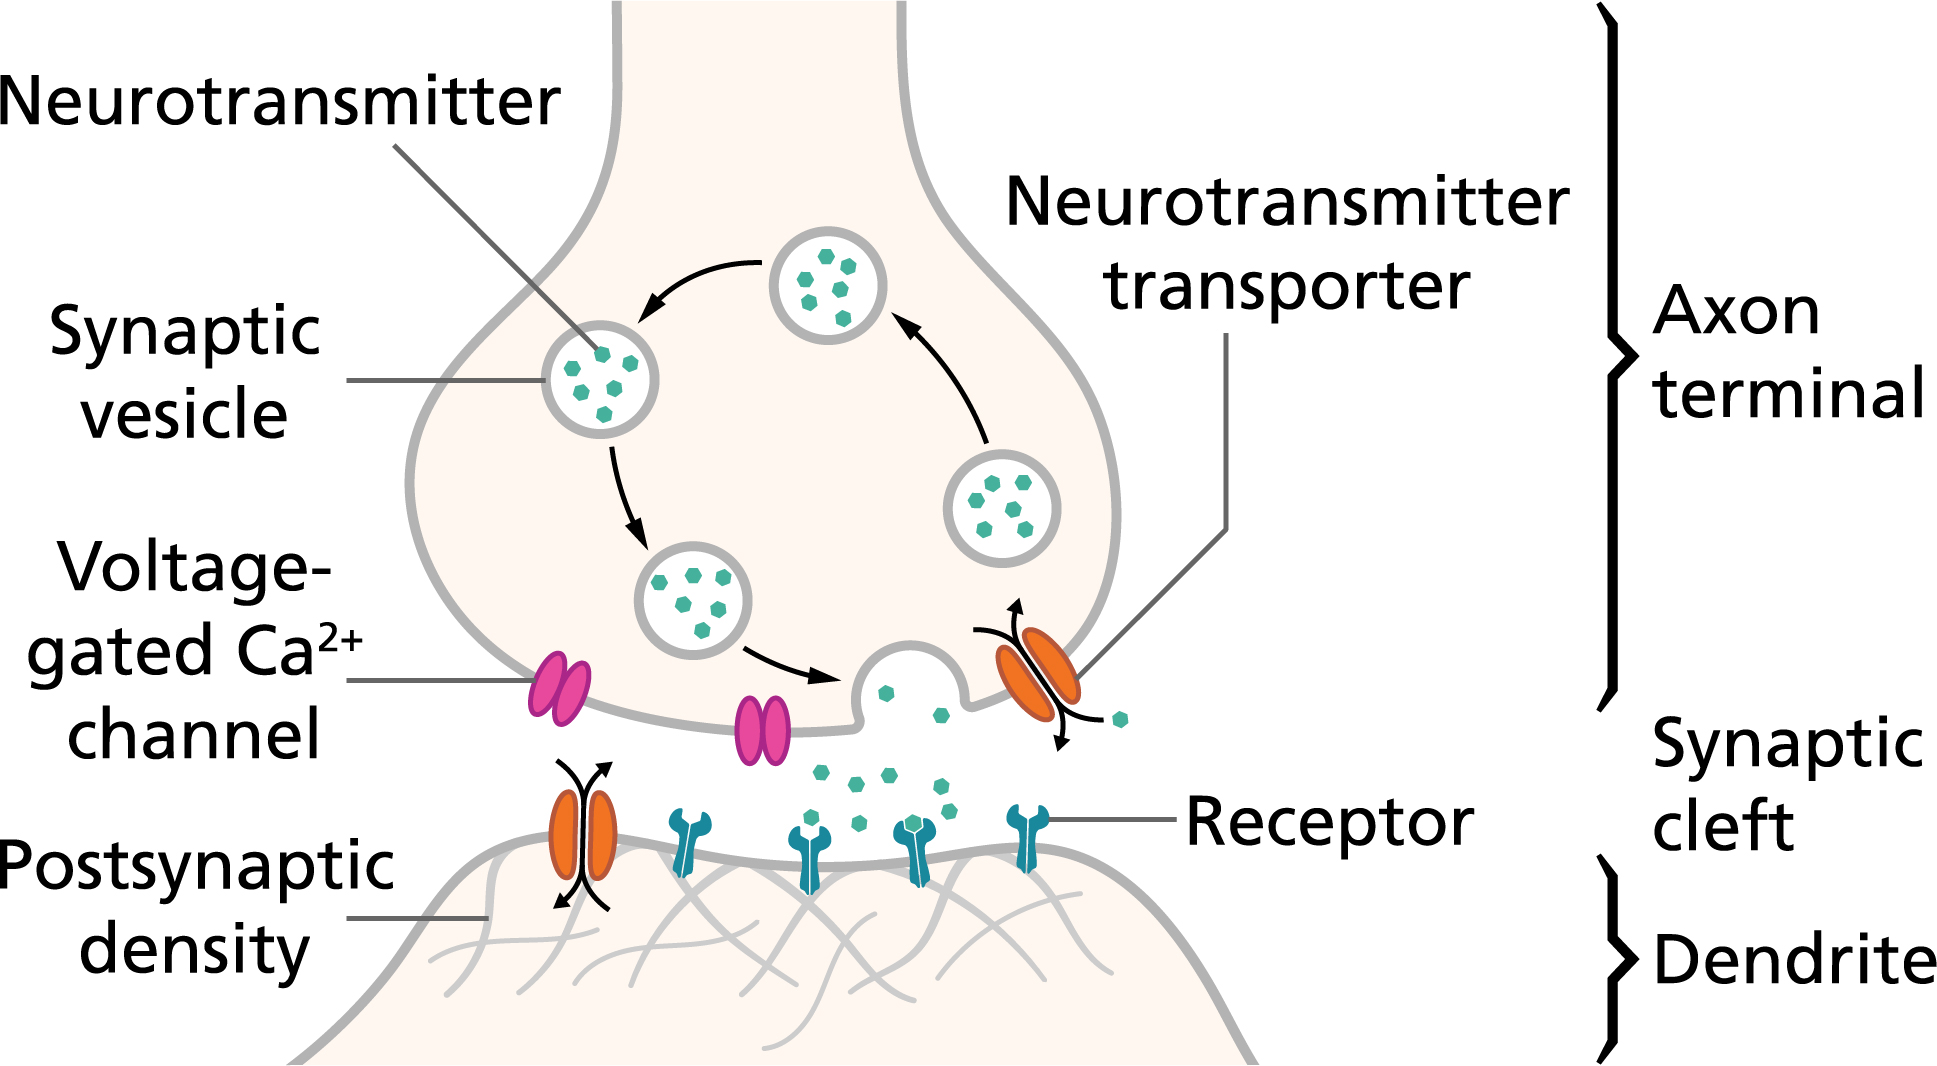 Action potentials and synapses queensland brain institute an action potential or spike causes neurotransmitters to be released across the synaptic cleft causing an electrical signal in the postsynaptic neuron ccuart Images